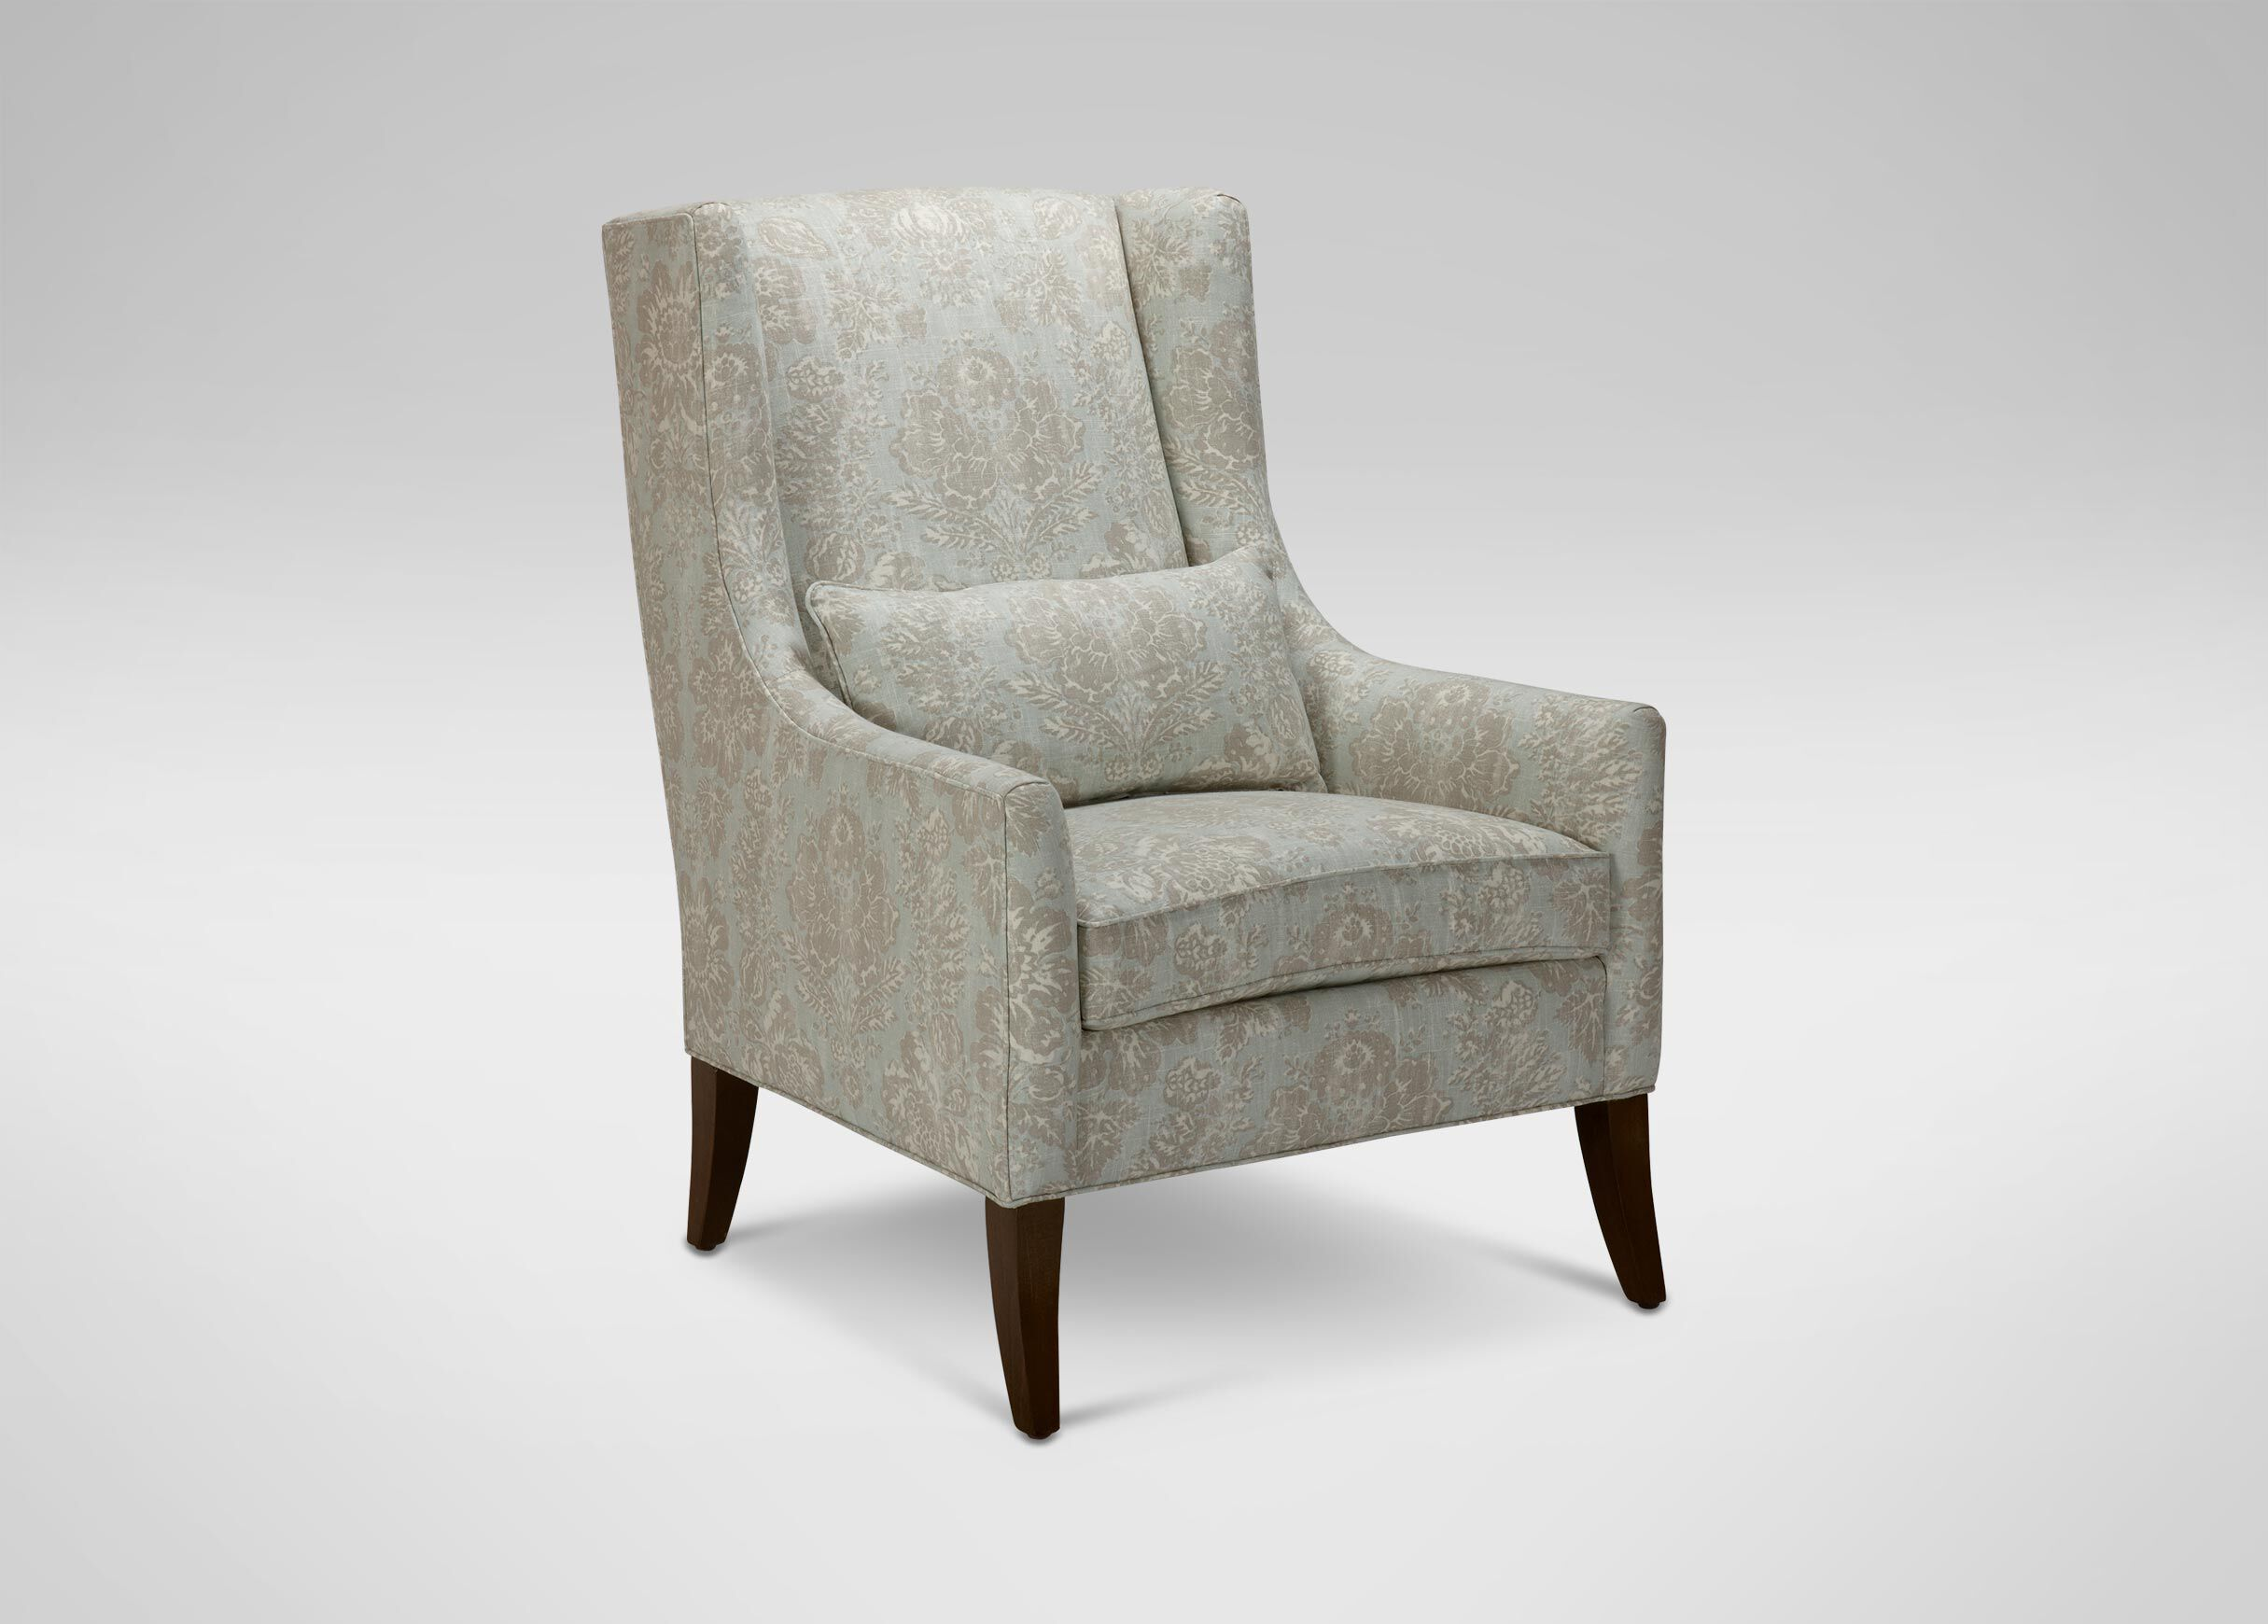 Charmant Kyle Wing Chair Chairs Chaises